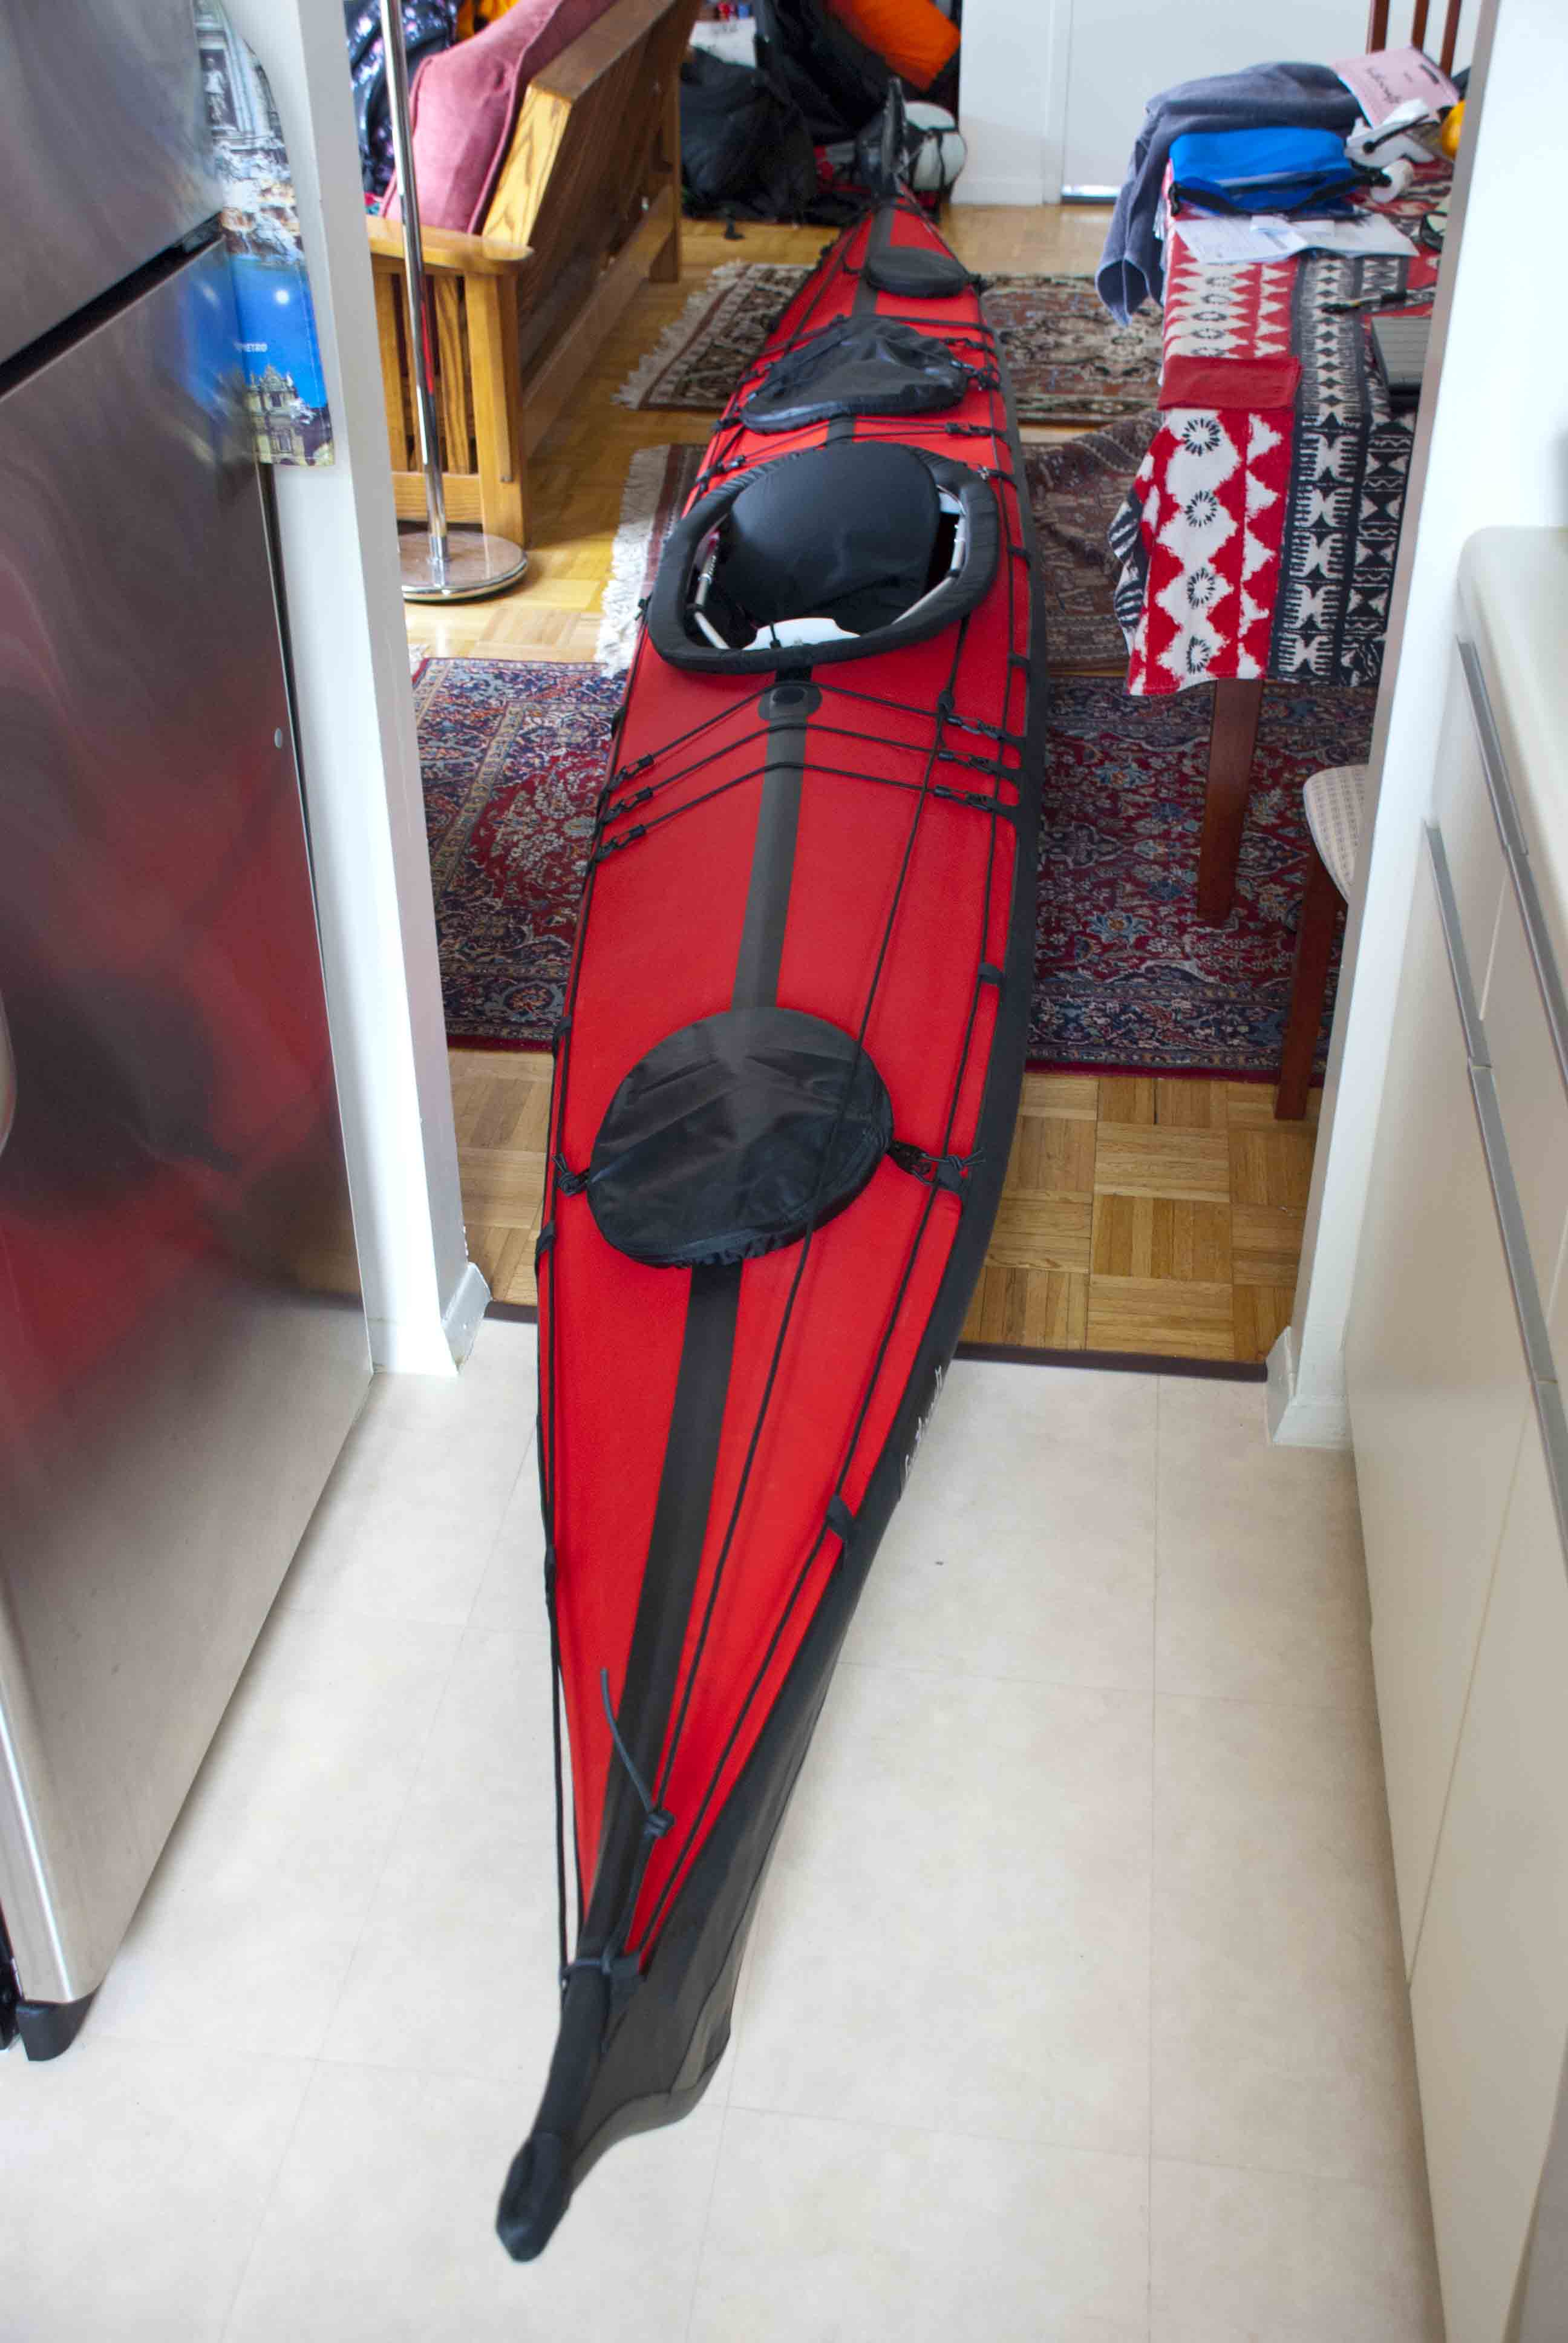 The kayak on the 17th floor wind against current for 180 water street 17th floor